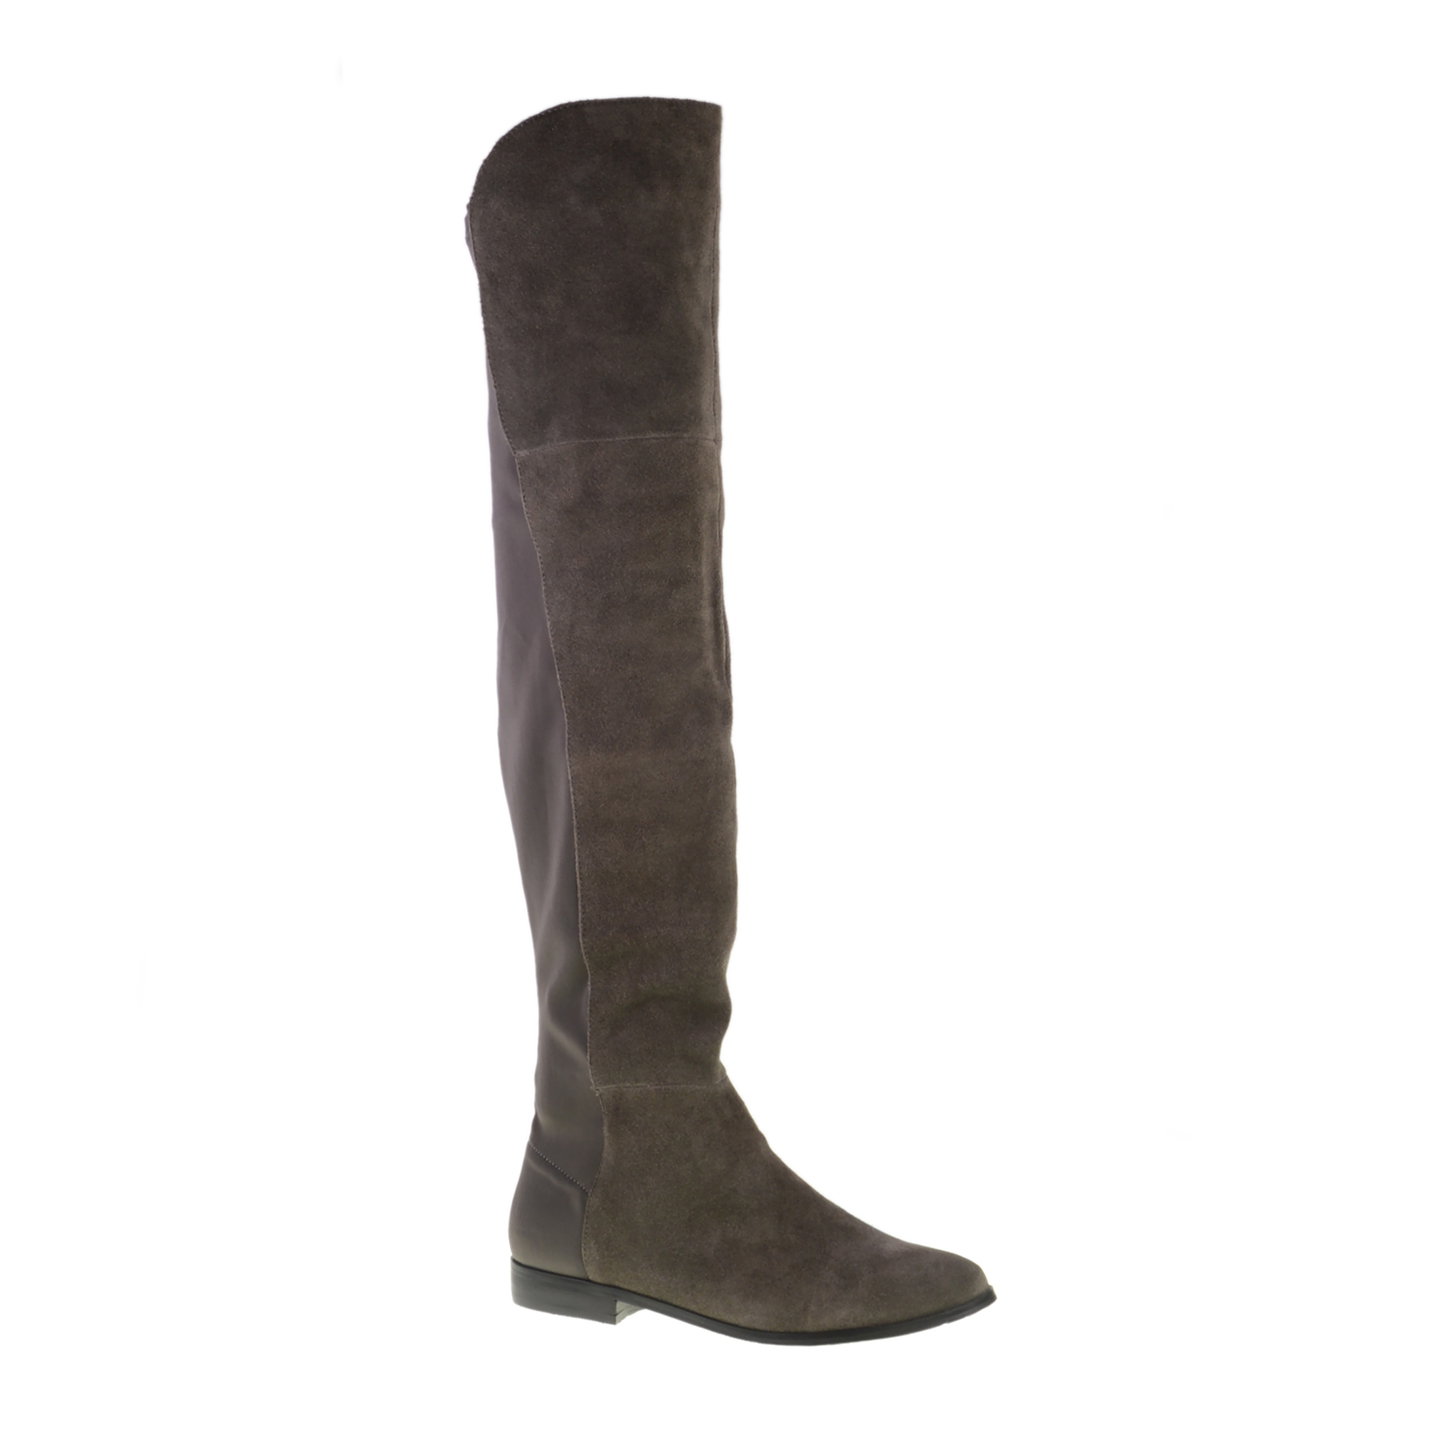 Suede Over The Knee Boots Flat 6ahfoMe8